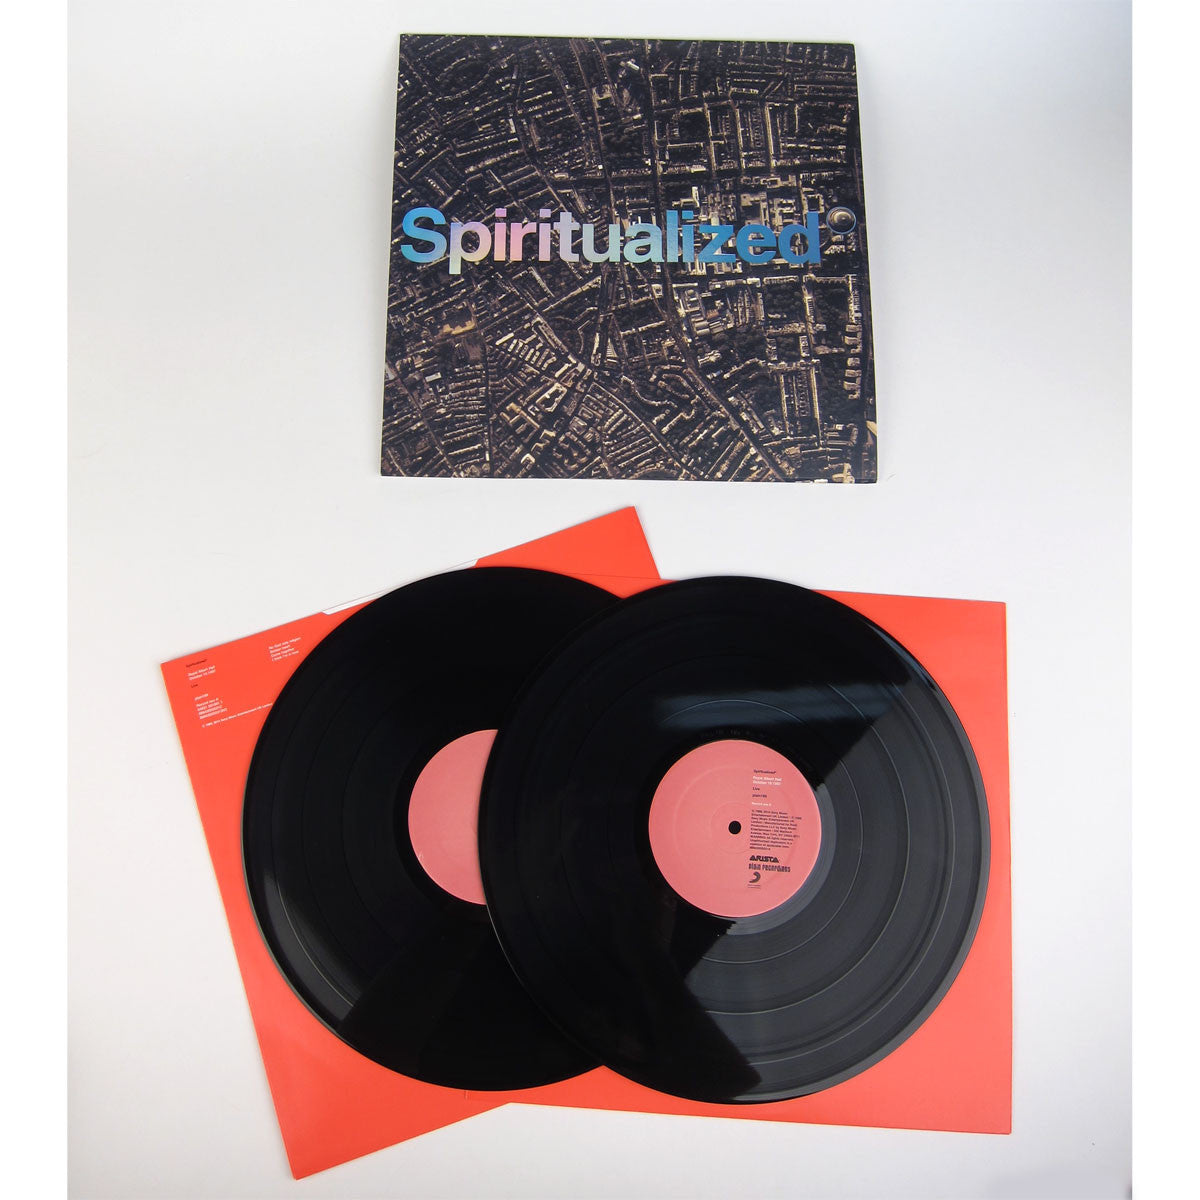 Spiritualized: Royal Albert Hall October 10 1997 Live (180g) Vinyl 2LP